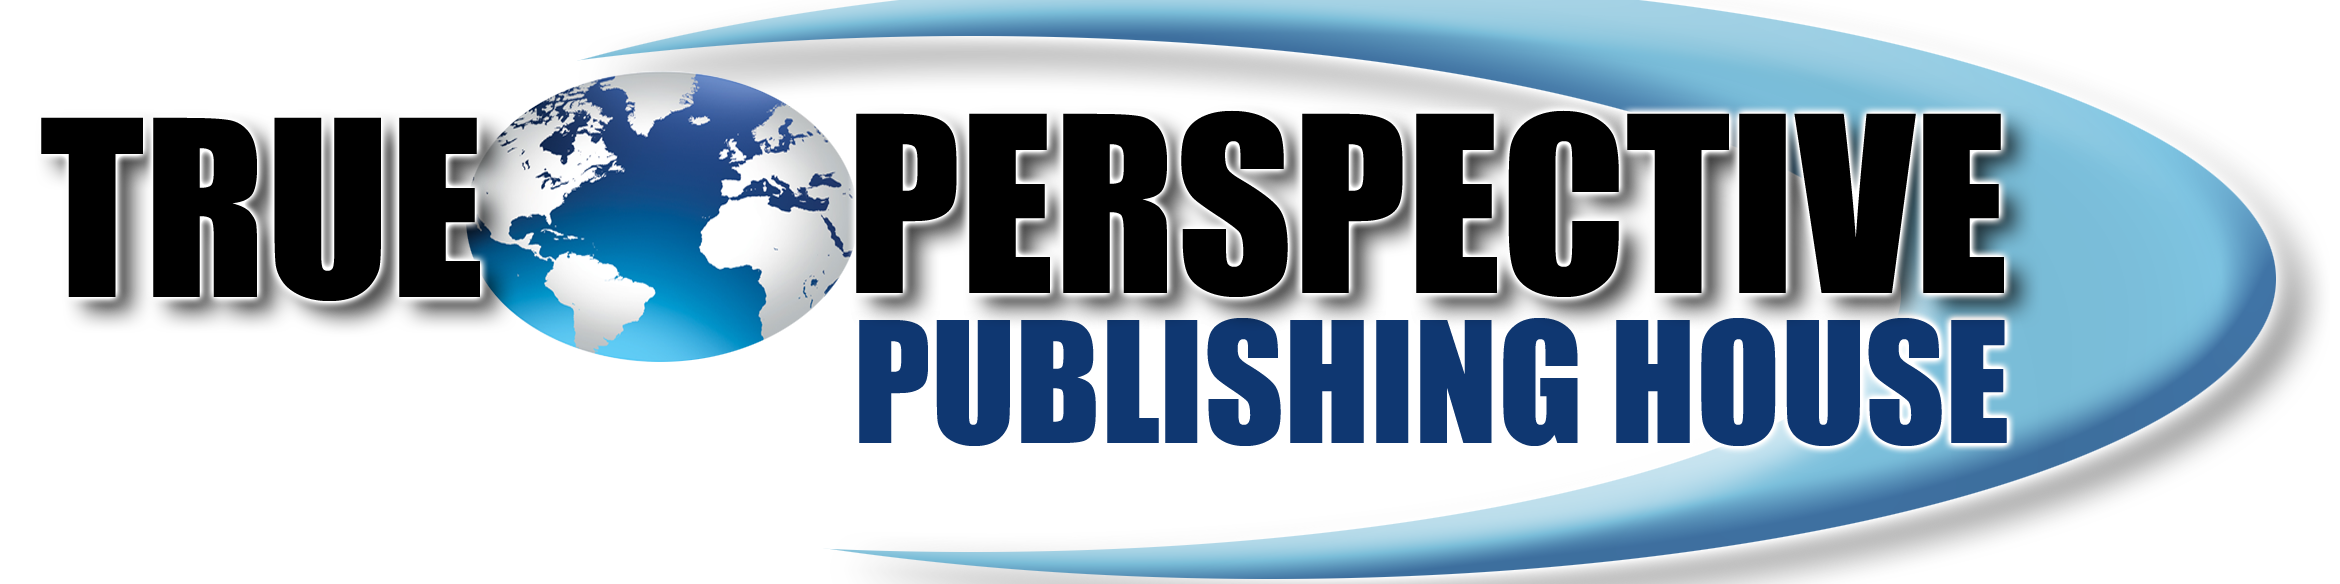 True Perspective Publishing House